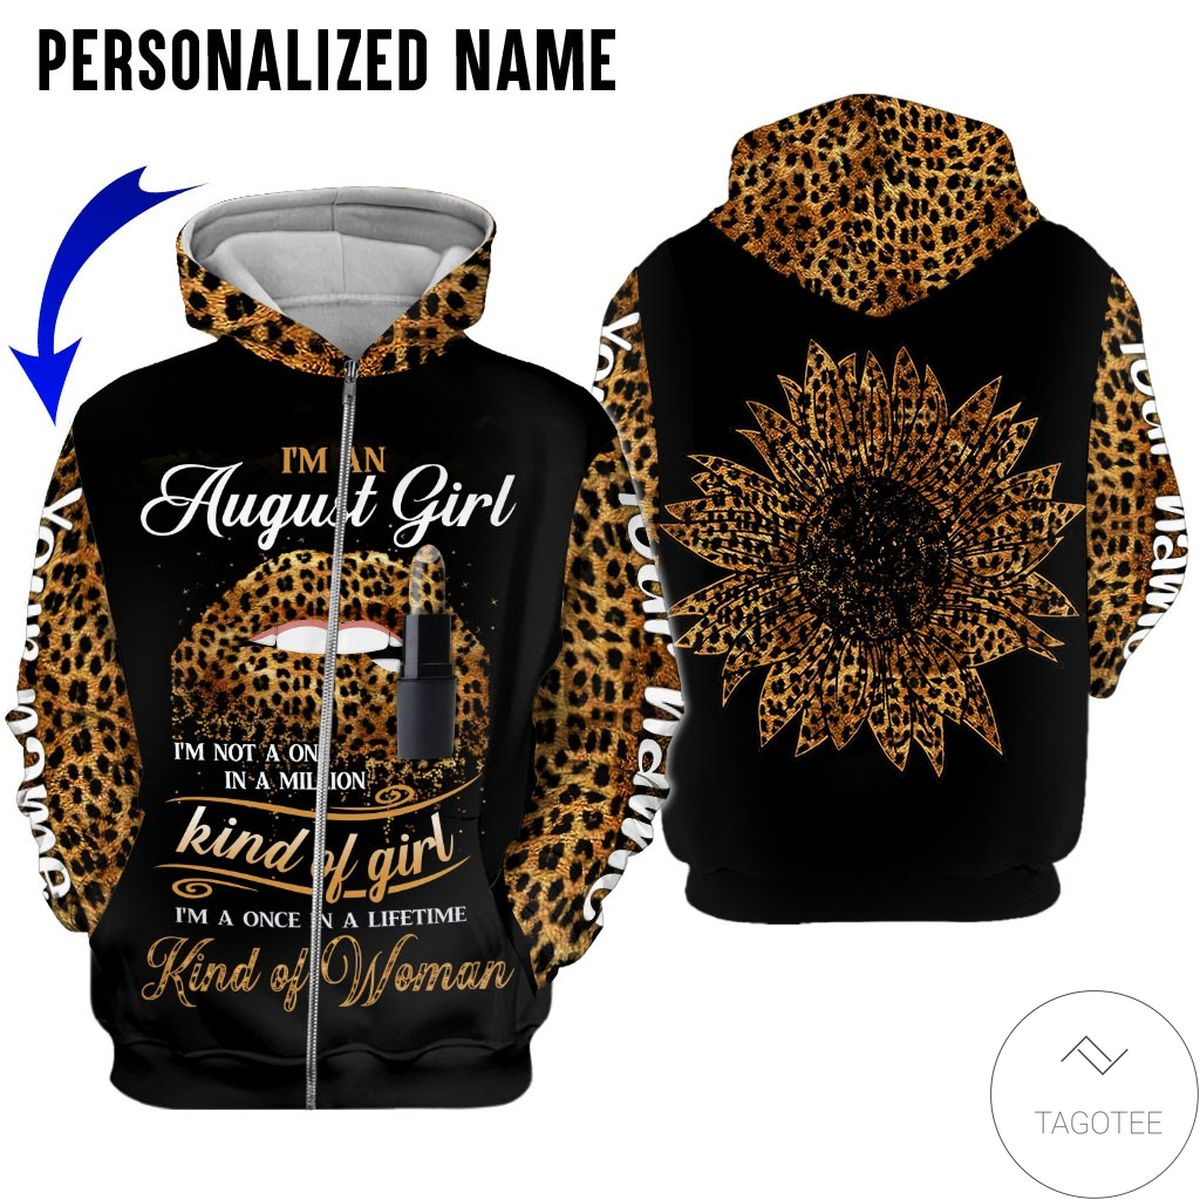 POD Personalized Name I'm August Girl Kind Of Girl All Over Print Hoodie